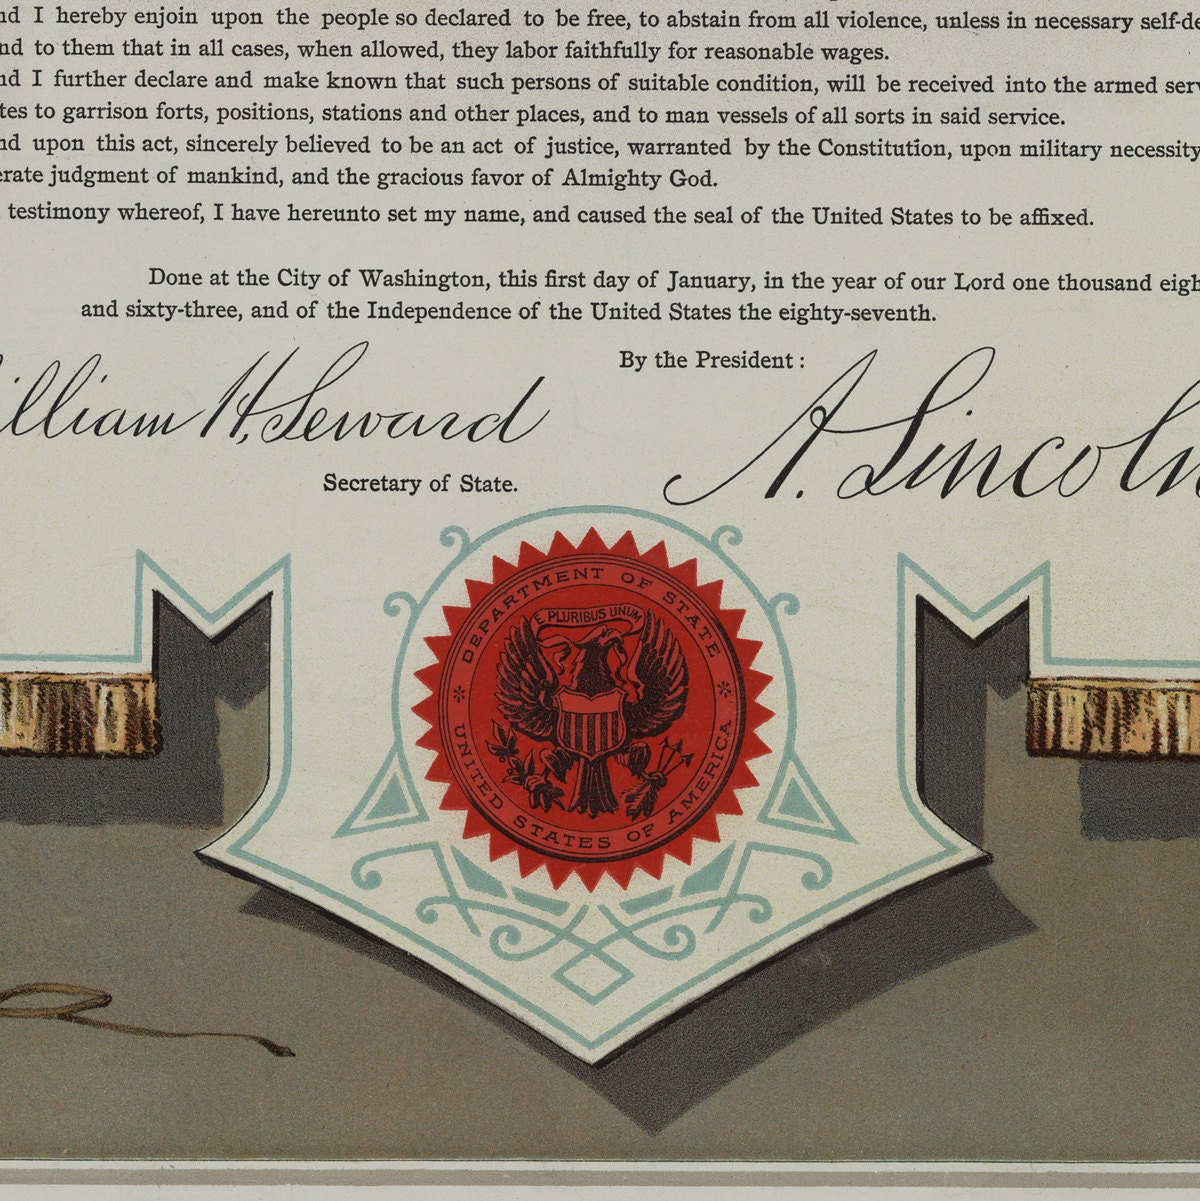 emancipation papers ohio What are some of the general rules on how to get emancipated in ohio once you are emancipated make sure you keep your papers with you at all times.